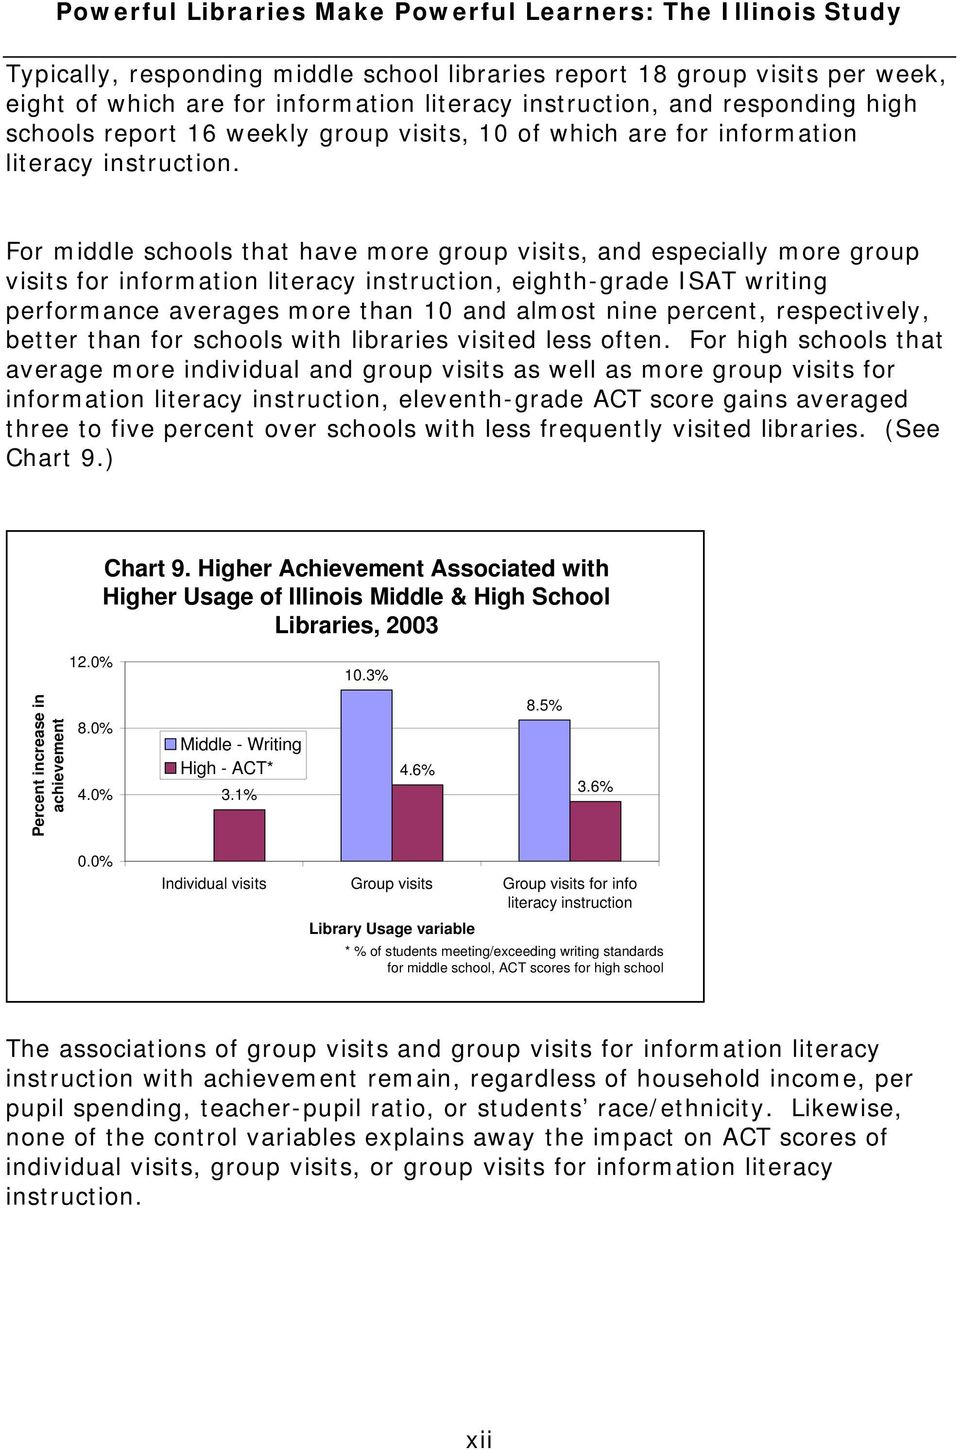 For middle schools that have more group visits, and especially more group visits for information literacy instruction, eighth-grade ISAT writing performance averages more than 10 and almost nine